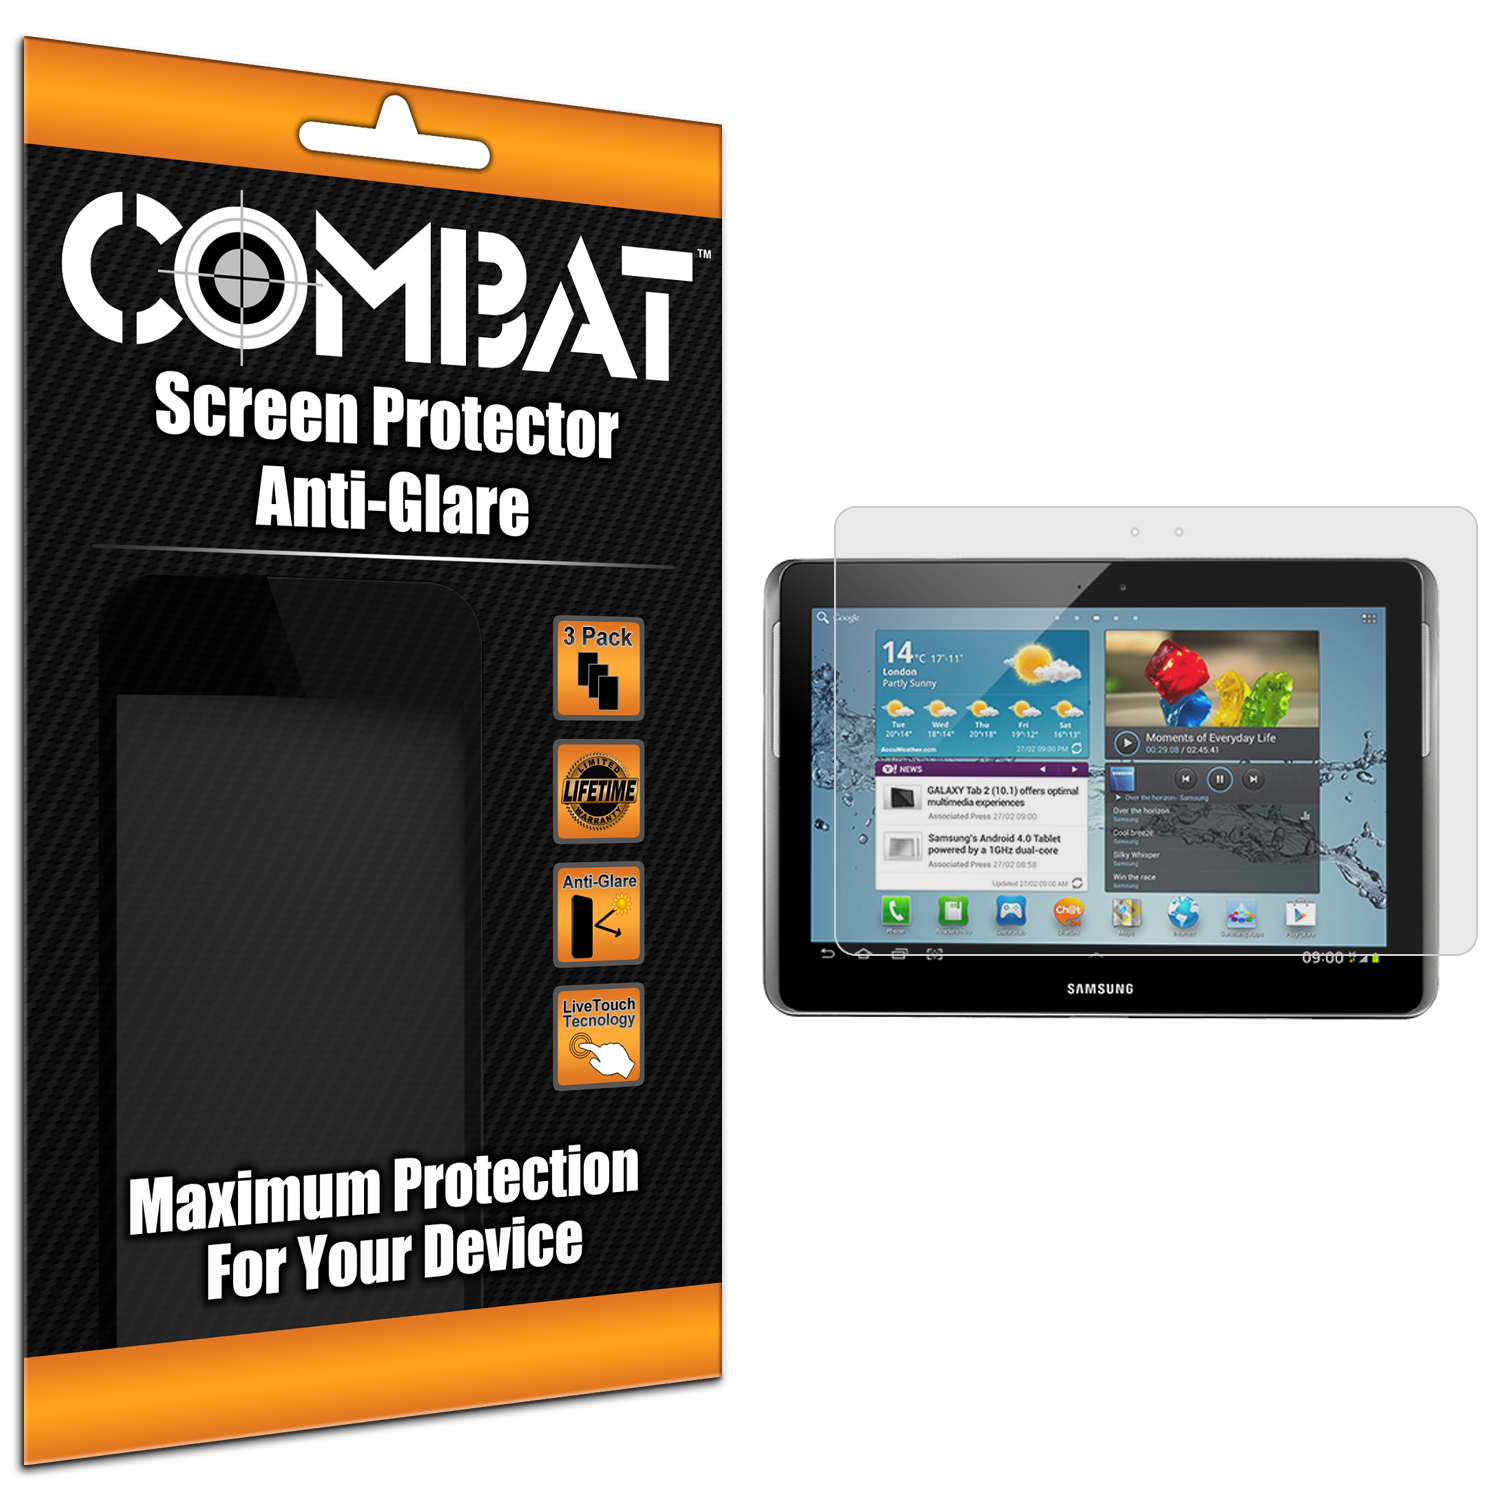 Samsung Galaxy Tab 2 10.1 Combat 3 Pack Anti-Glare Matte Screen Protector